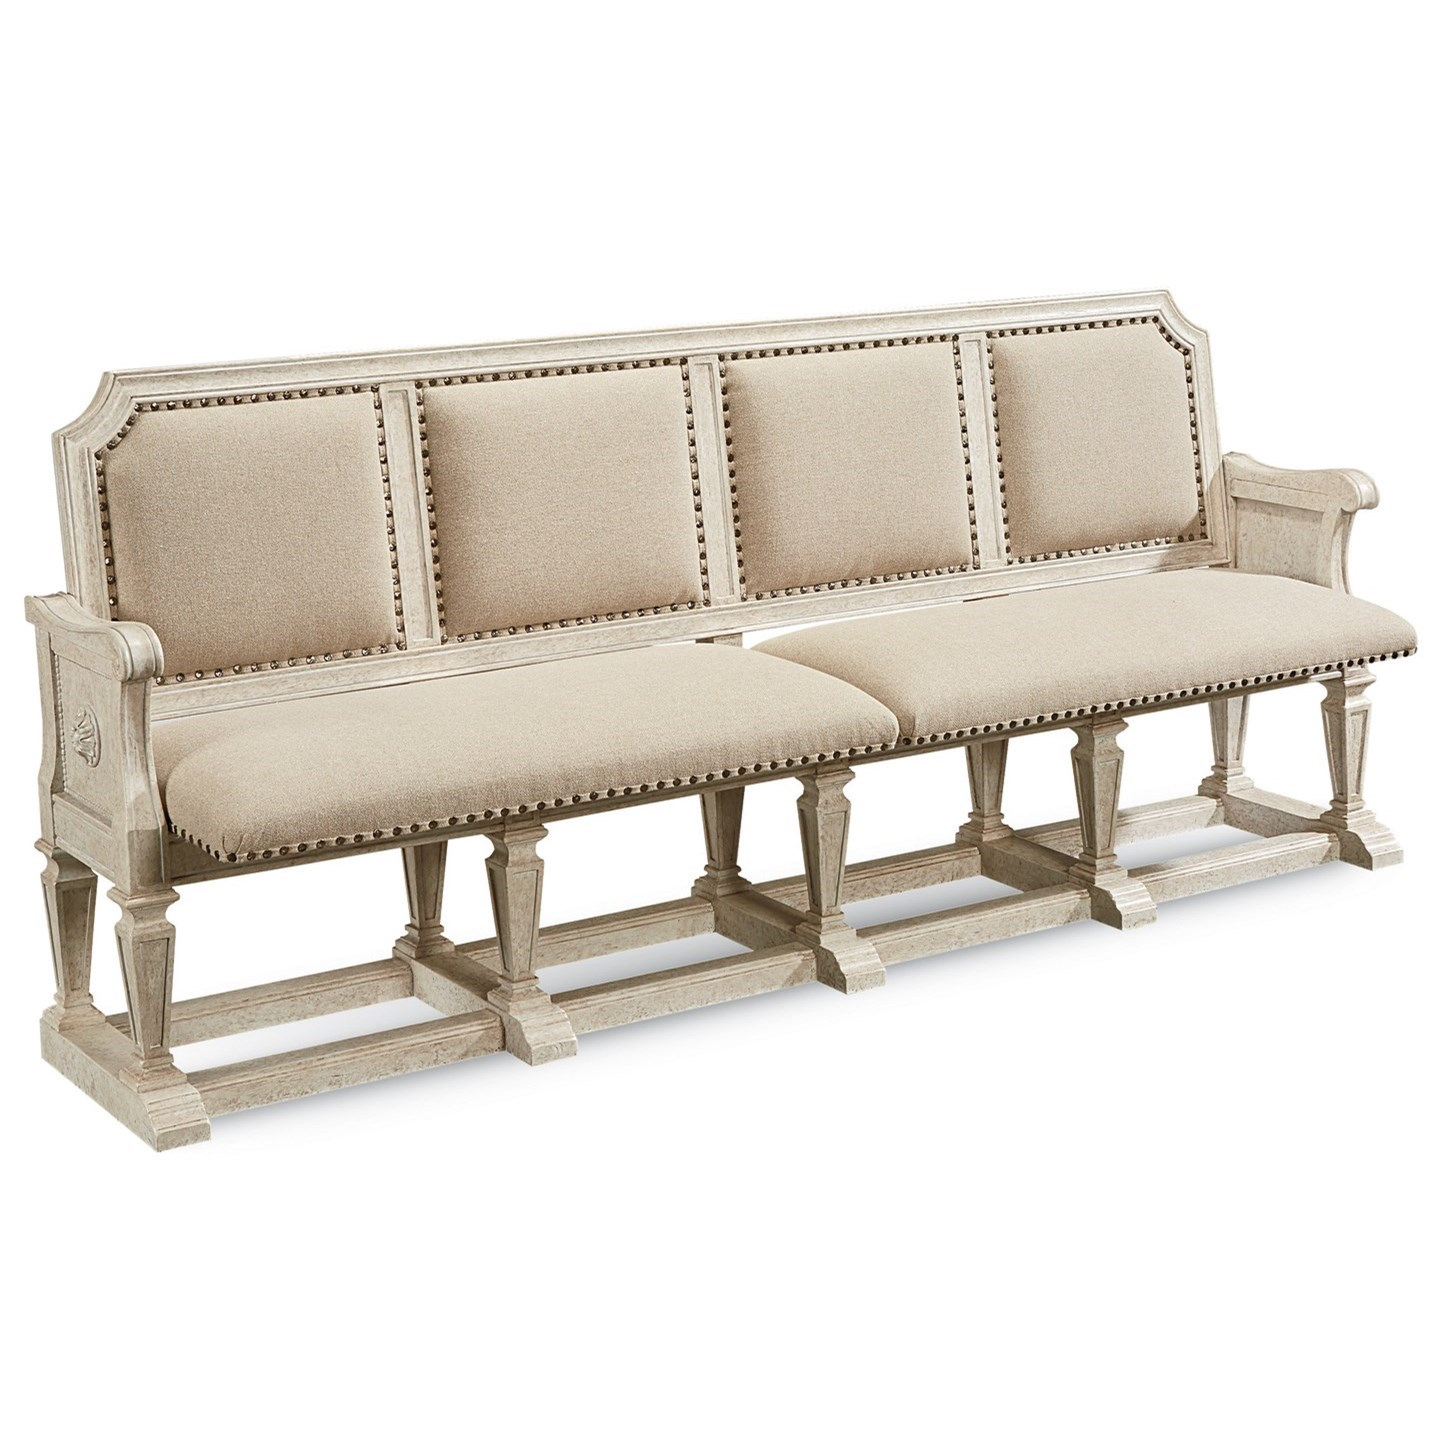 Arch Salvage Becket Dining Bench by A.R.T. Furniture Inc at Baer's Furniture